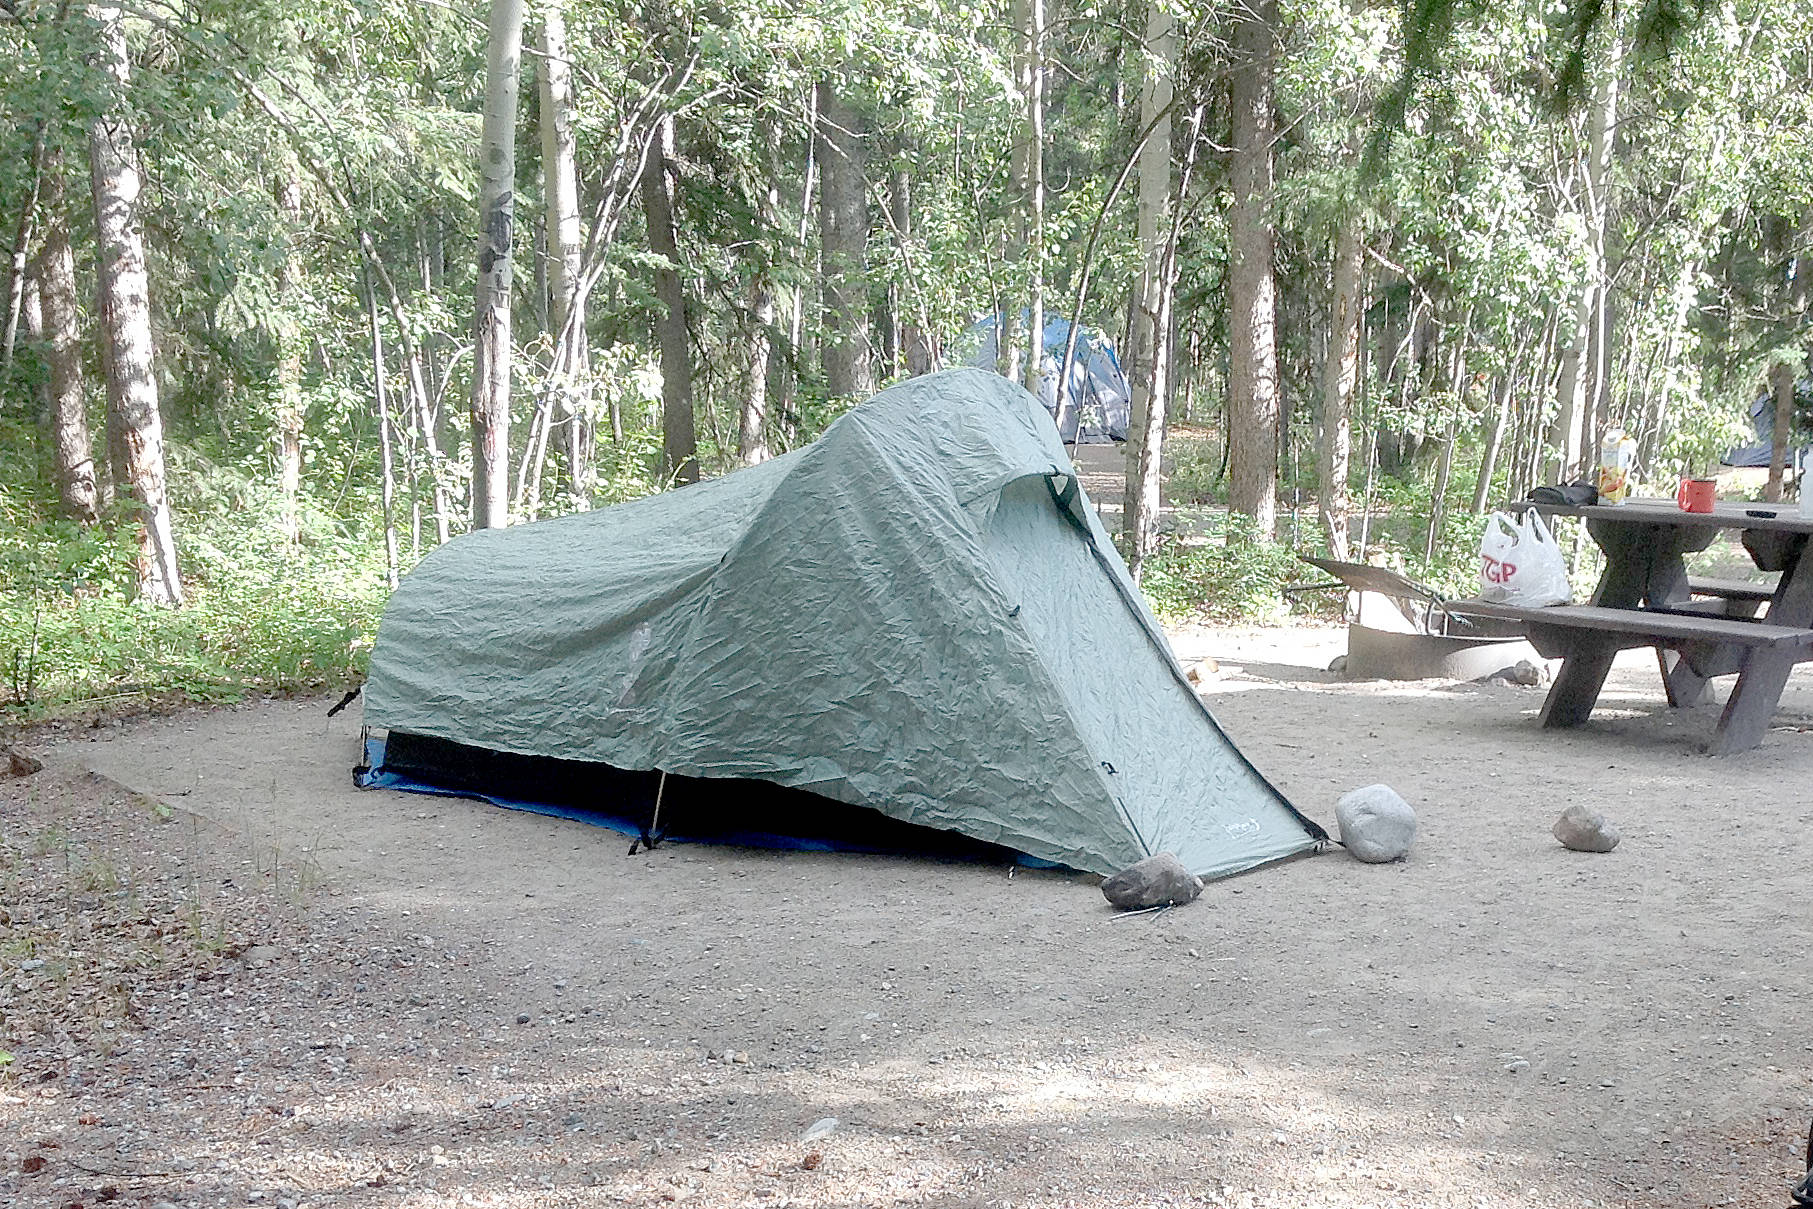 The warm weather means time for a camping trip, or at least an excursion into nature. How much do you know about camps and camping-related facts? (John Arendt - Summerland Review)